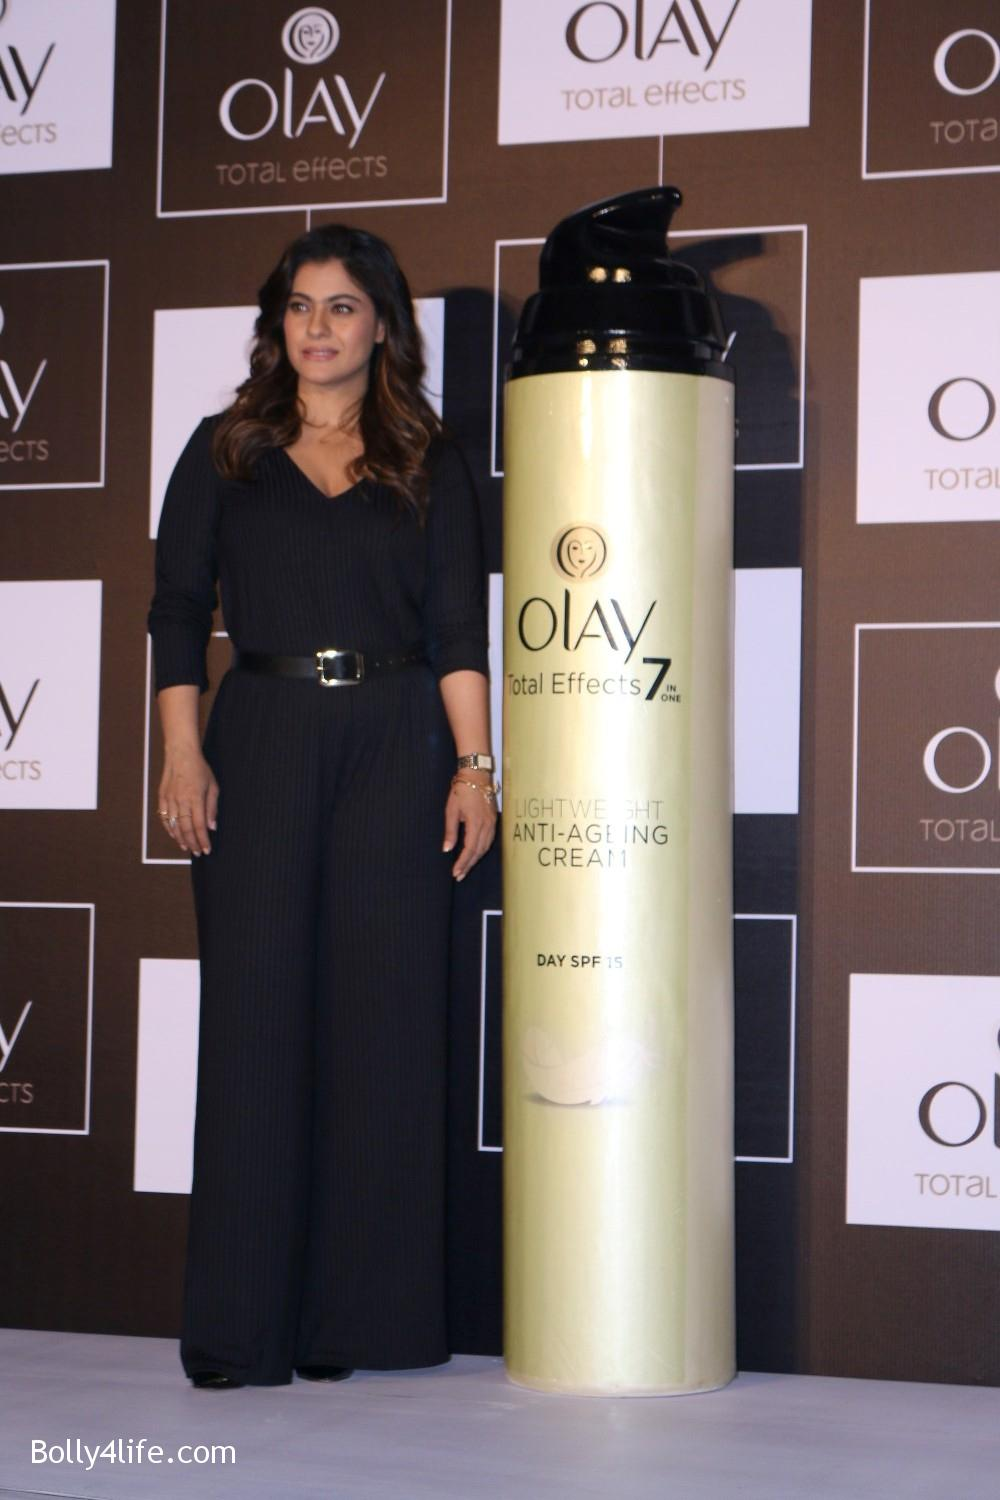 Kajol-Devgan-during-the-launch-of-Olay-Total-Effects-new-cream-13.jpg